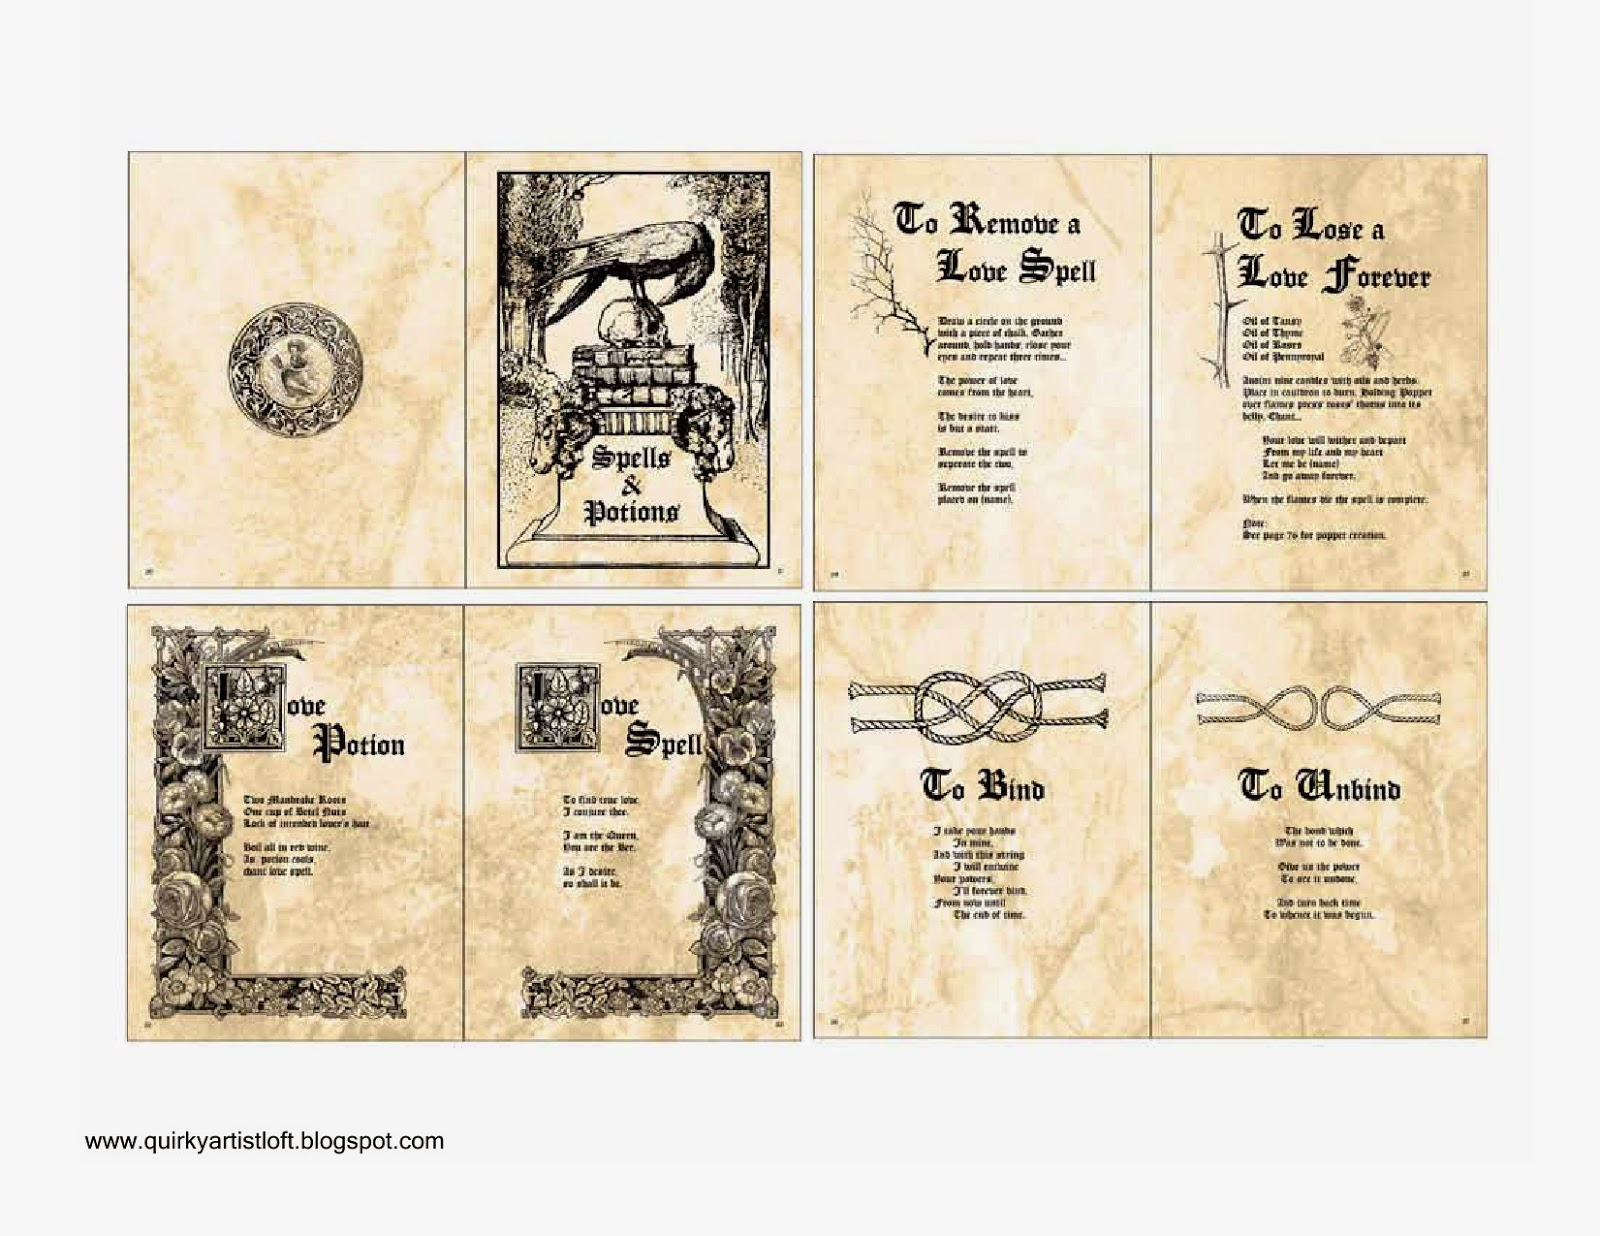 Harry Potter Book Pdf : Quirky artist loft free printable doll spell book